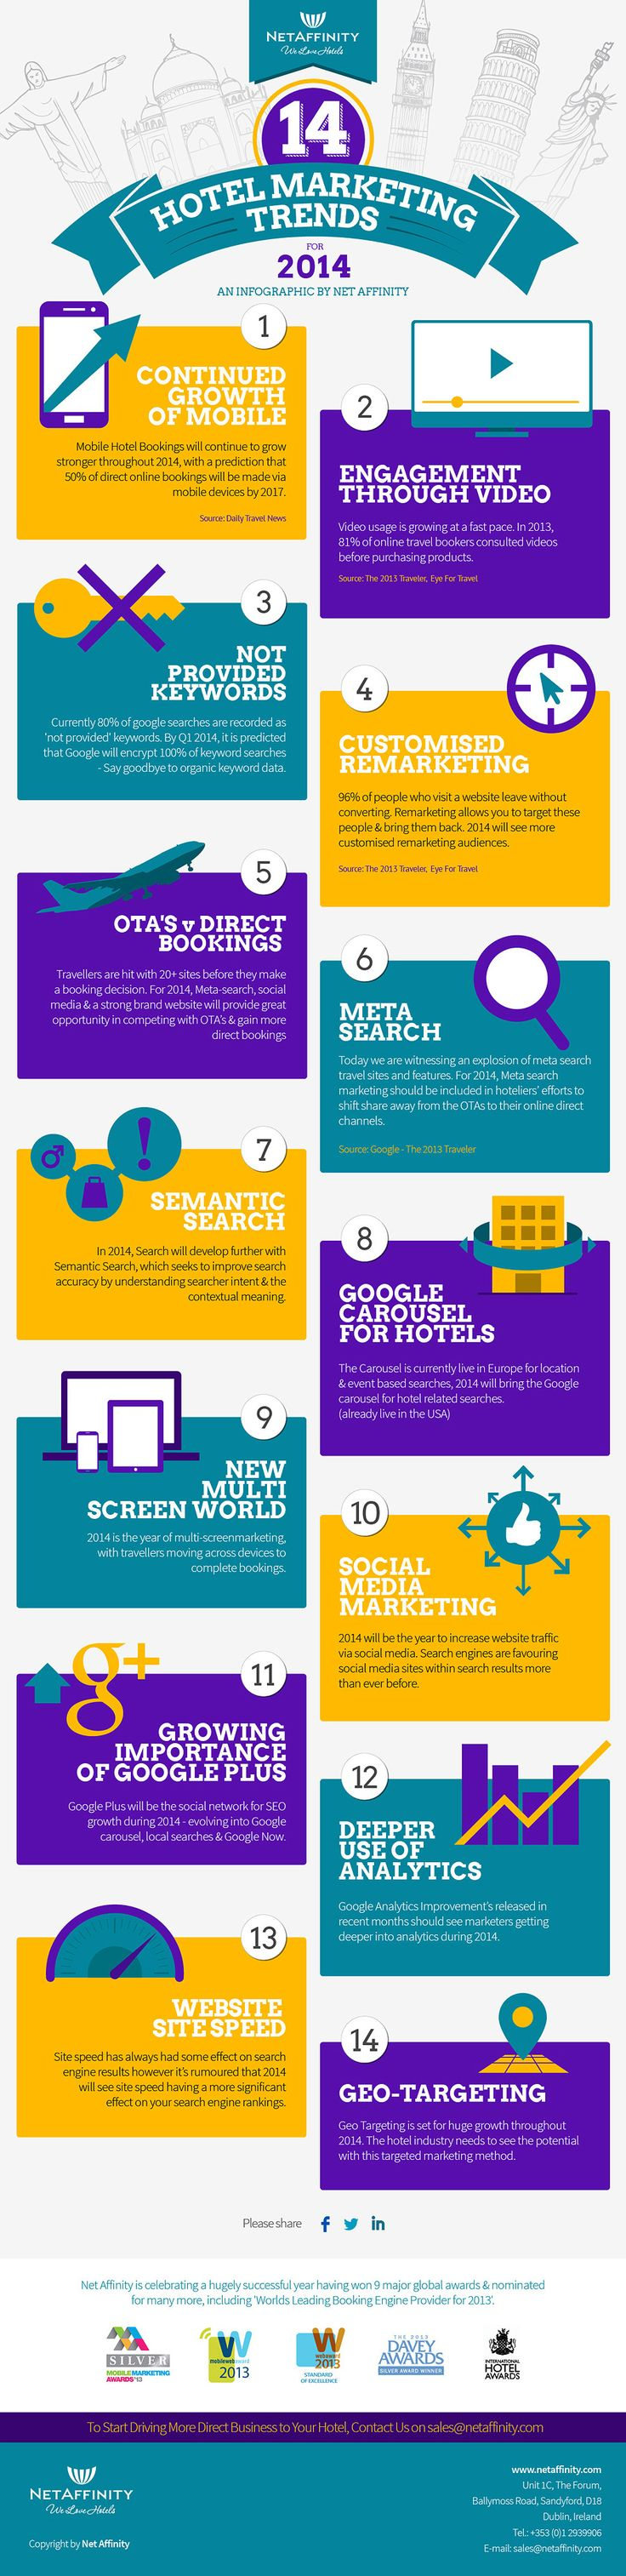 14 Hotel Marketing Trends for 2014 – An Infographic By Net Affinity